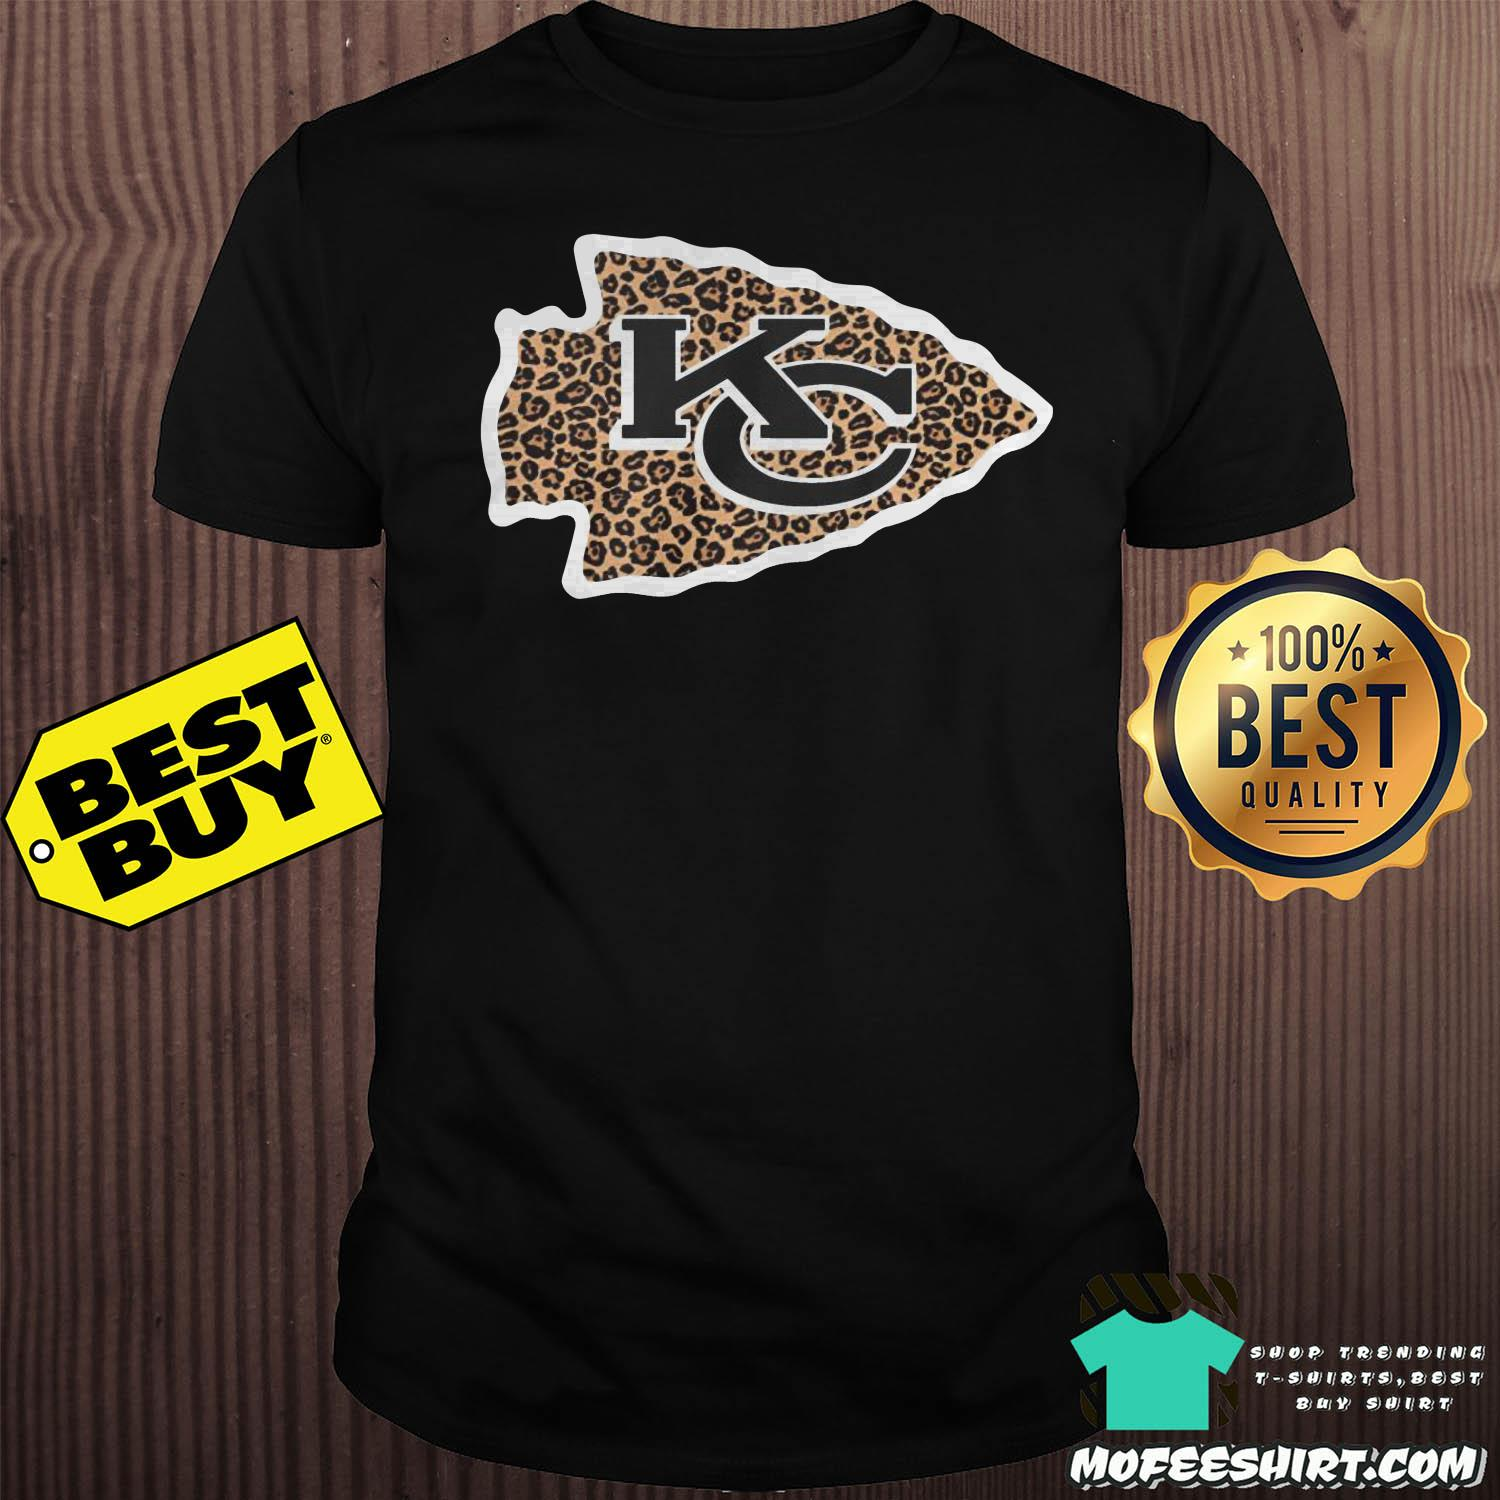 old glory kansas city chiefs shirt - Old Glory Kansas City Chiefs Shirt